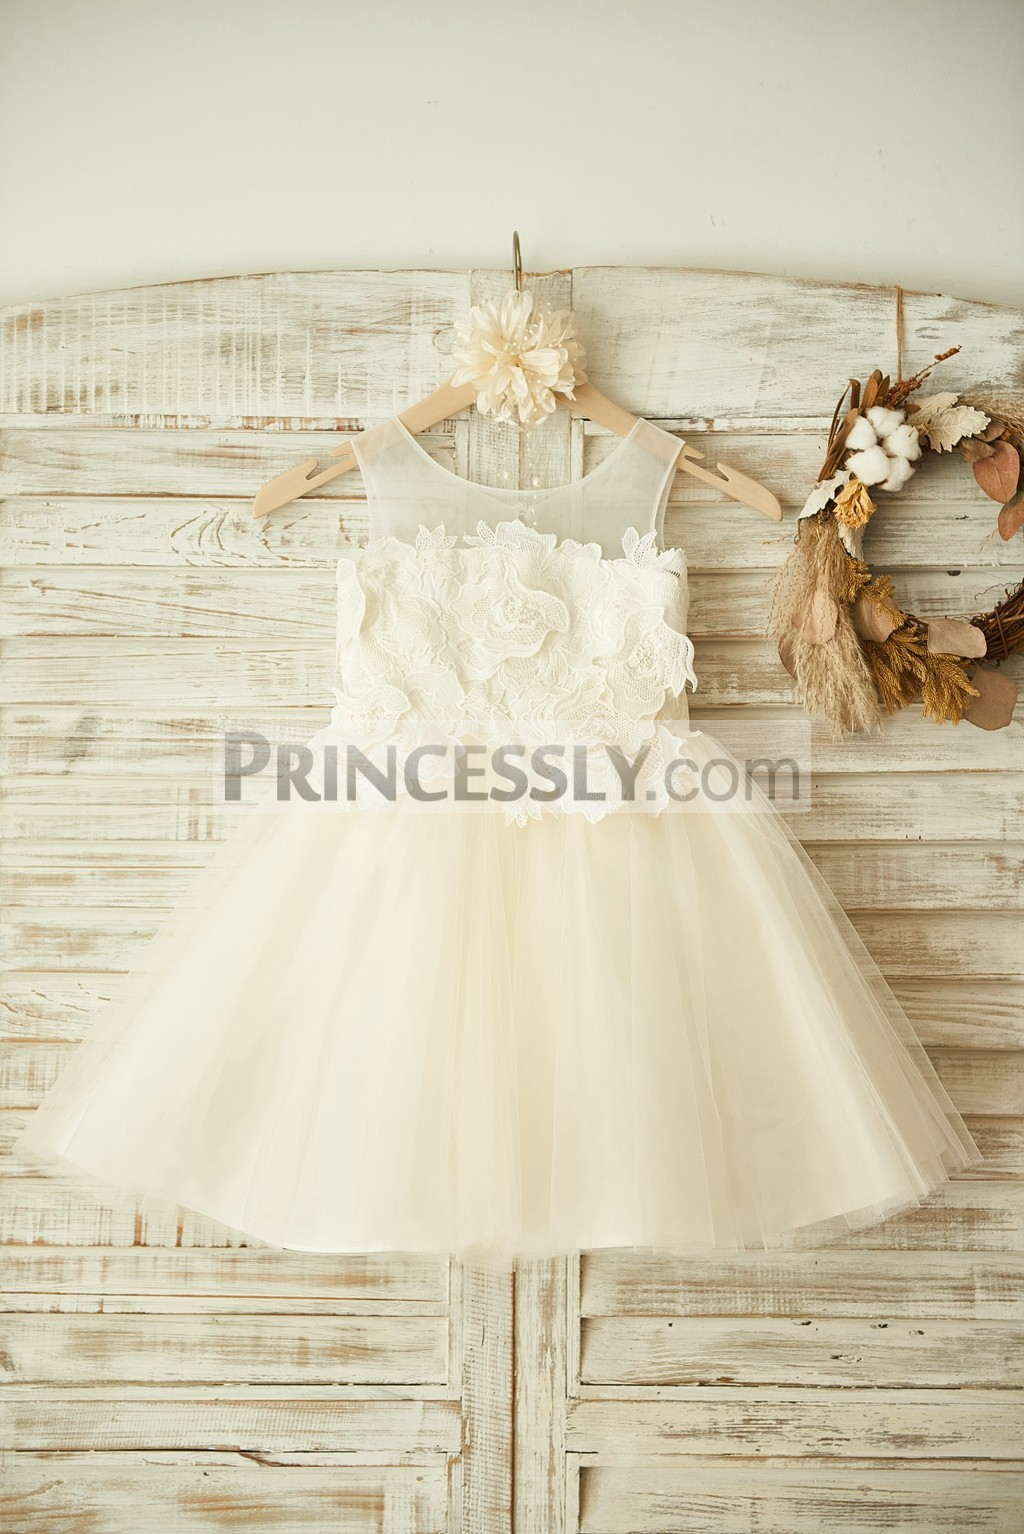 Sheer Neck Ivory Cotton Lace Champagne Tulle Flower Girl Dress